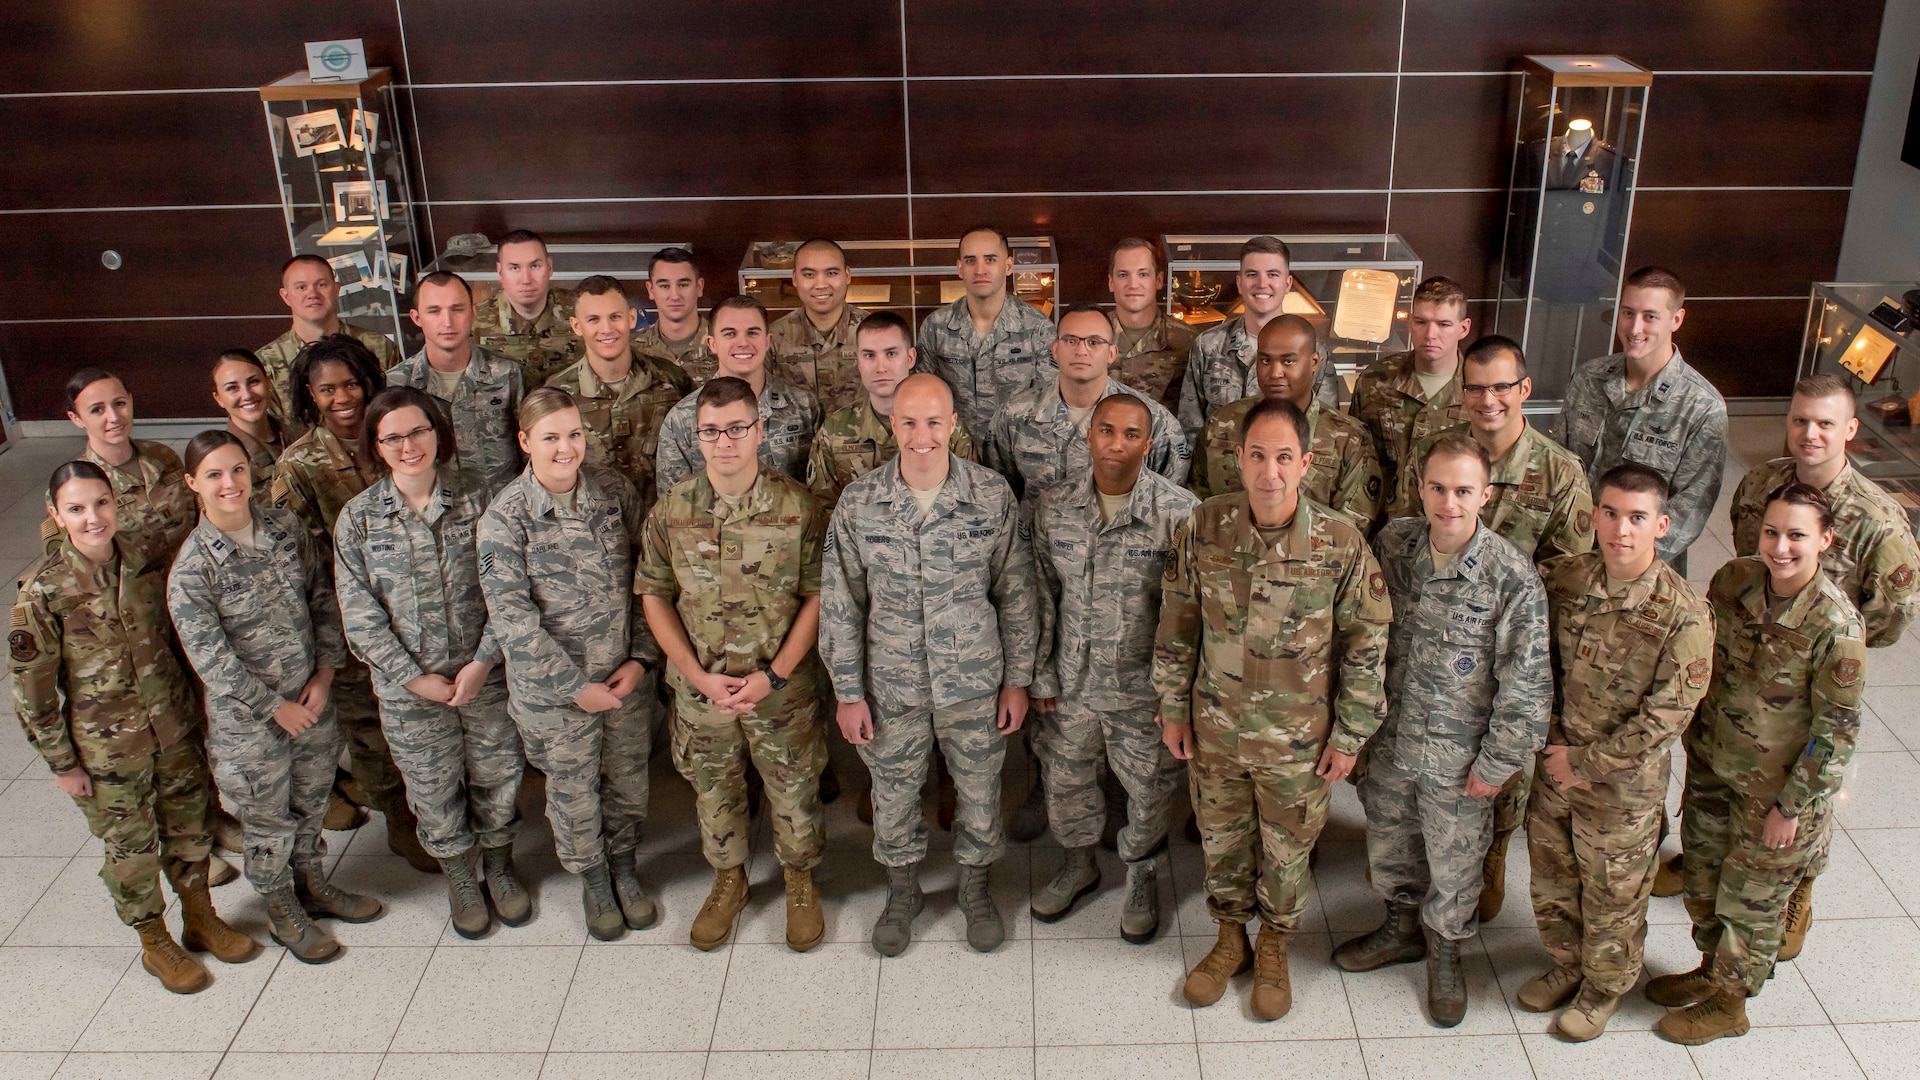 Air Force Space Command Deputy Commander Maj. Gen. John Shaw (front row, fourth from right) welcomes participants of AFSPC's first-ever Direct Ascent Program at Peterson Air Force Base, Colorado, Oct. 16, 2019. This program is created to develop today's mid-level officer and enlisted leaders on the criticality of space capabilities to the multi-service, multi-domain battle and need to ensure freedom of action in space, while denying potential adversaries the same. (U.S. Air Force photo by Dave Grim)